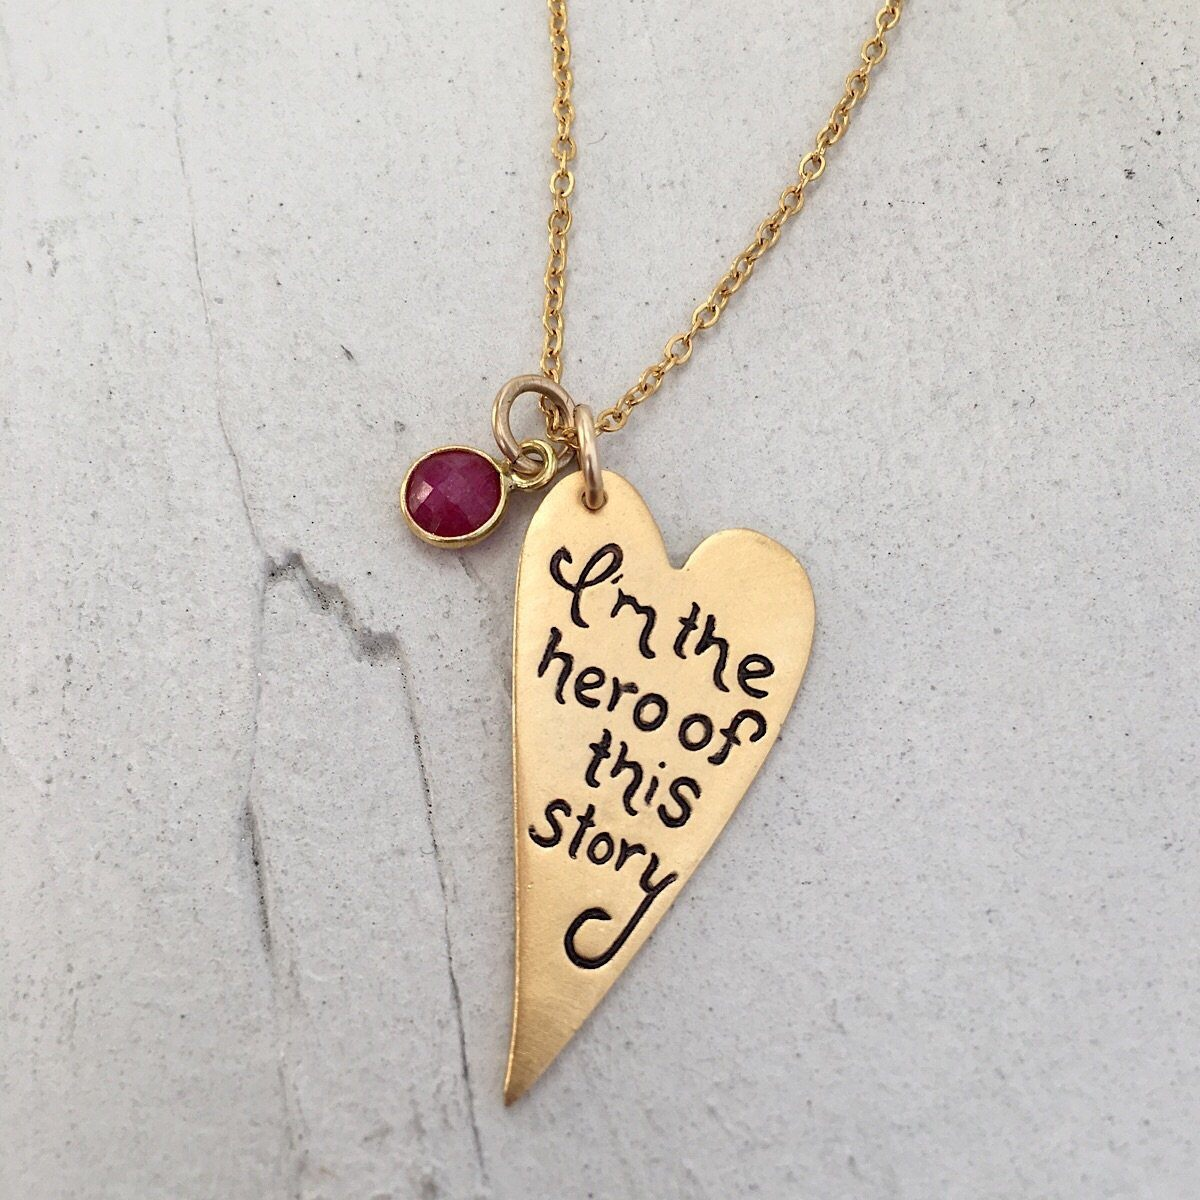 Hero Necklace - IsabelleGraceJewelry